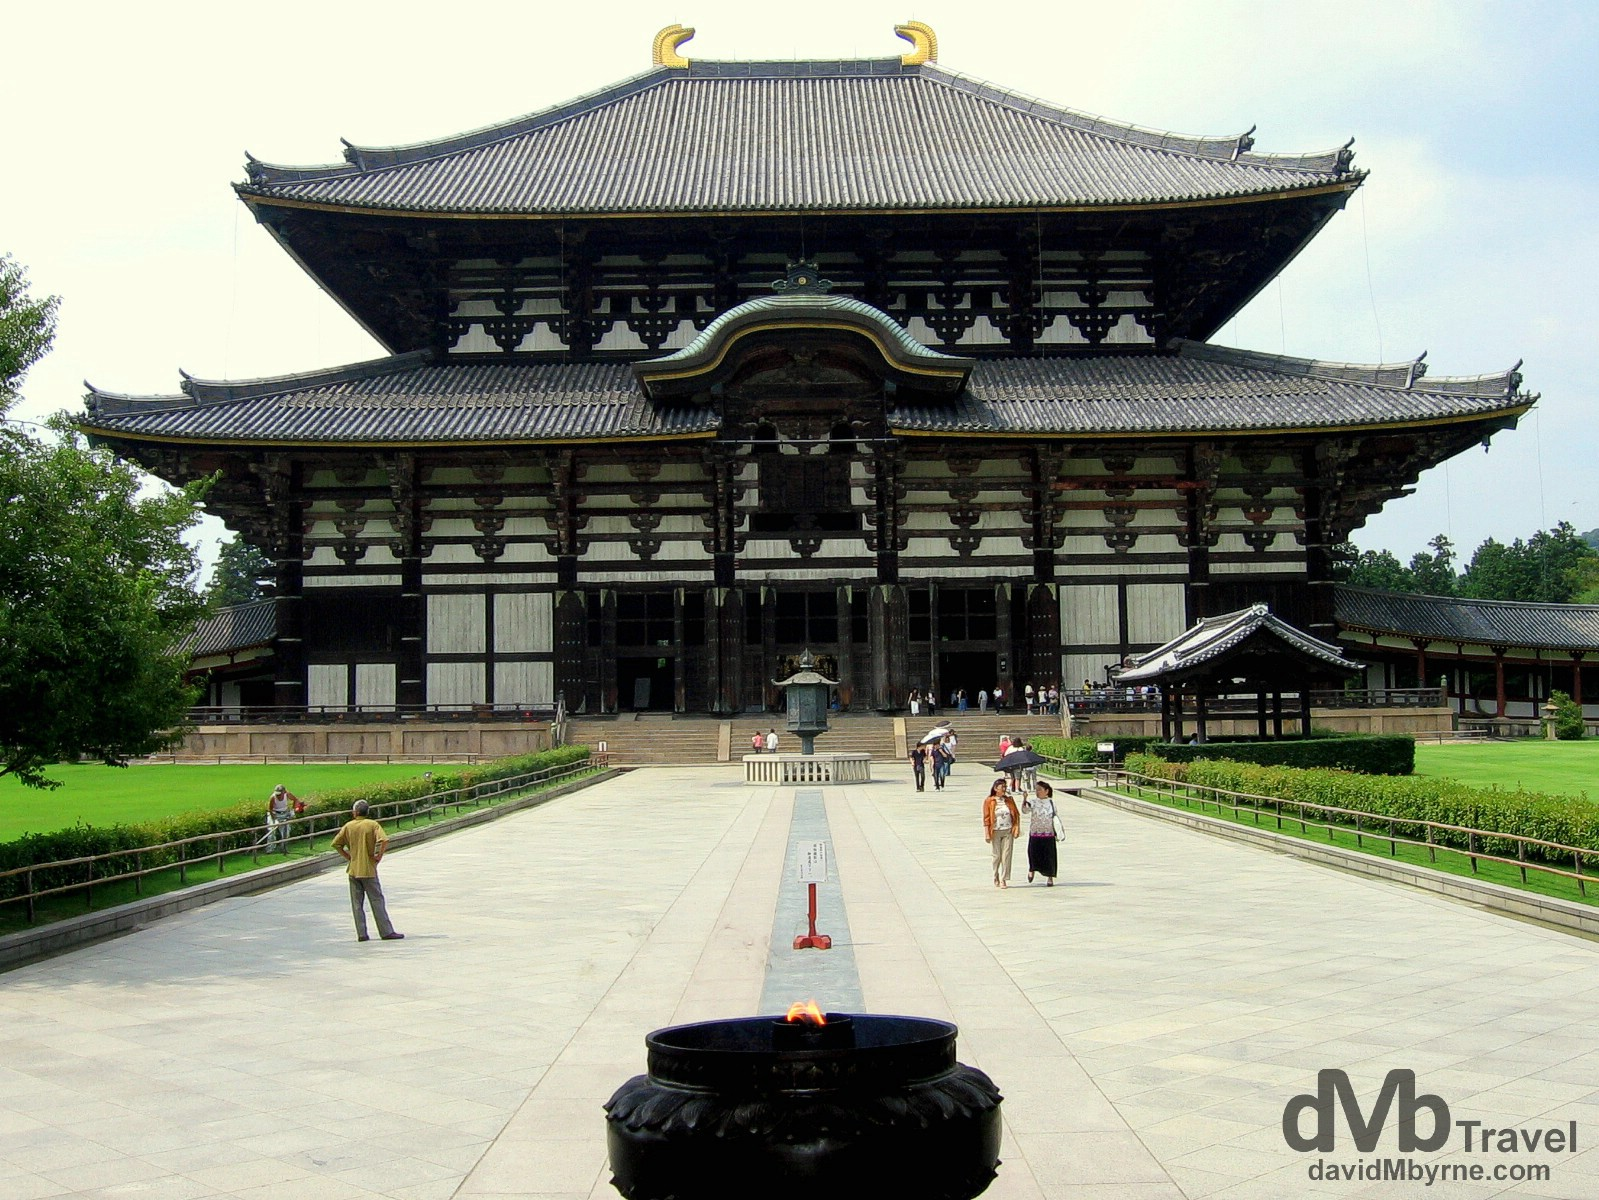 The largest wooden building in the world, the Great Buddha Hall of the Todai-ji is a Buddhist temple complex in Nara, Honshu, Japan. July 20th 2005.